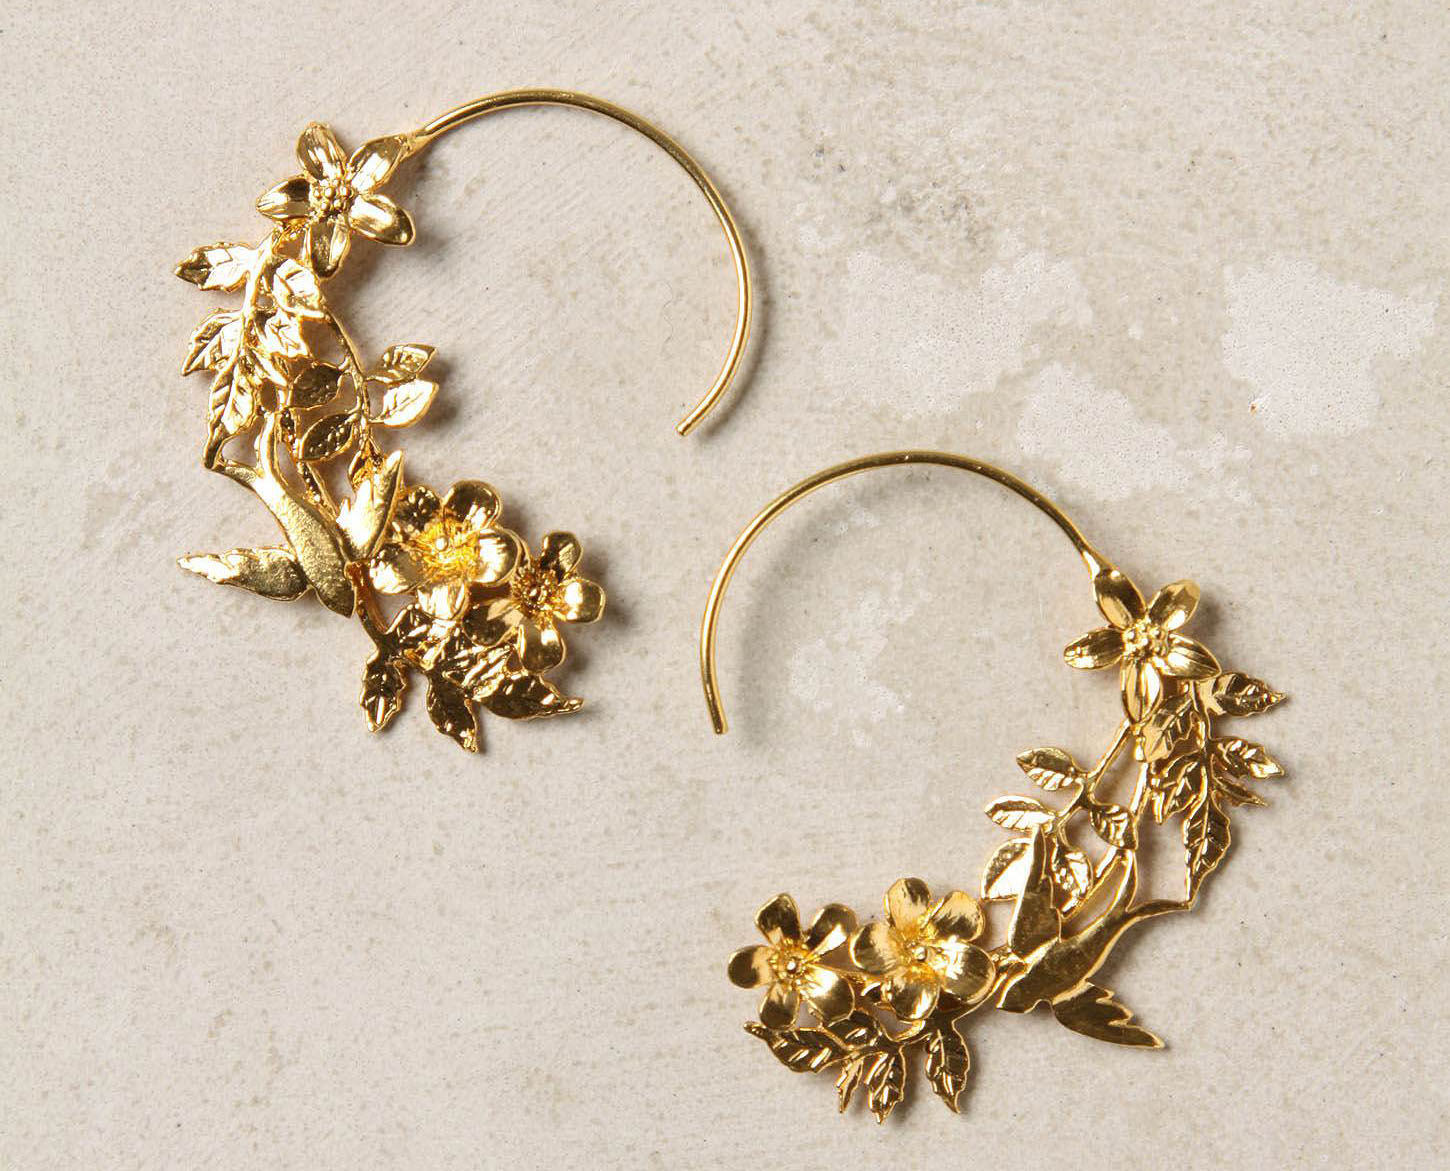 Anthropologie Agrippina hoops_thumb